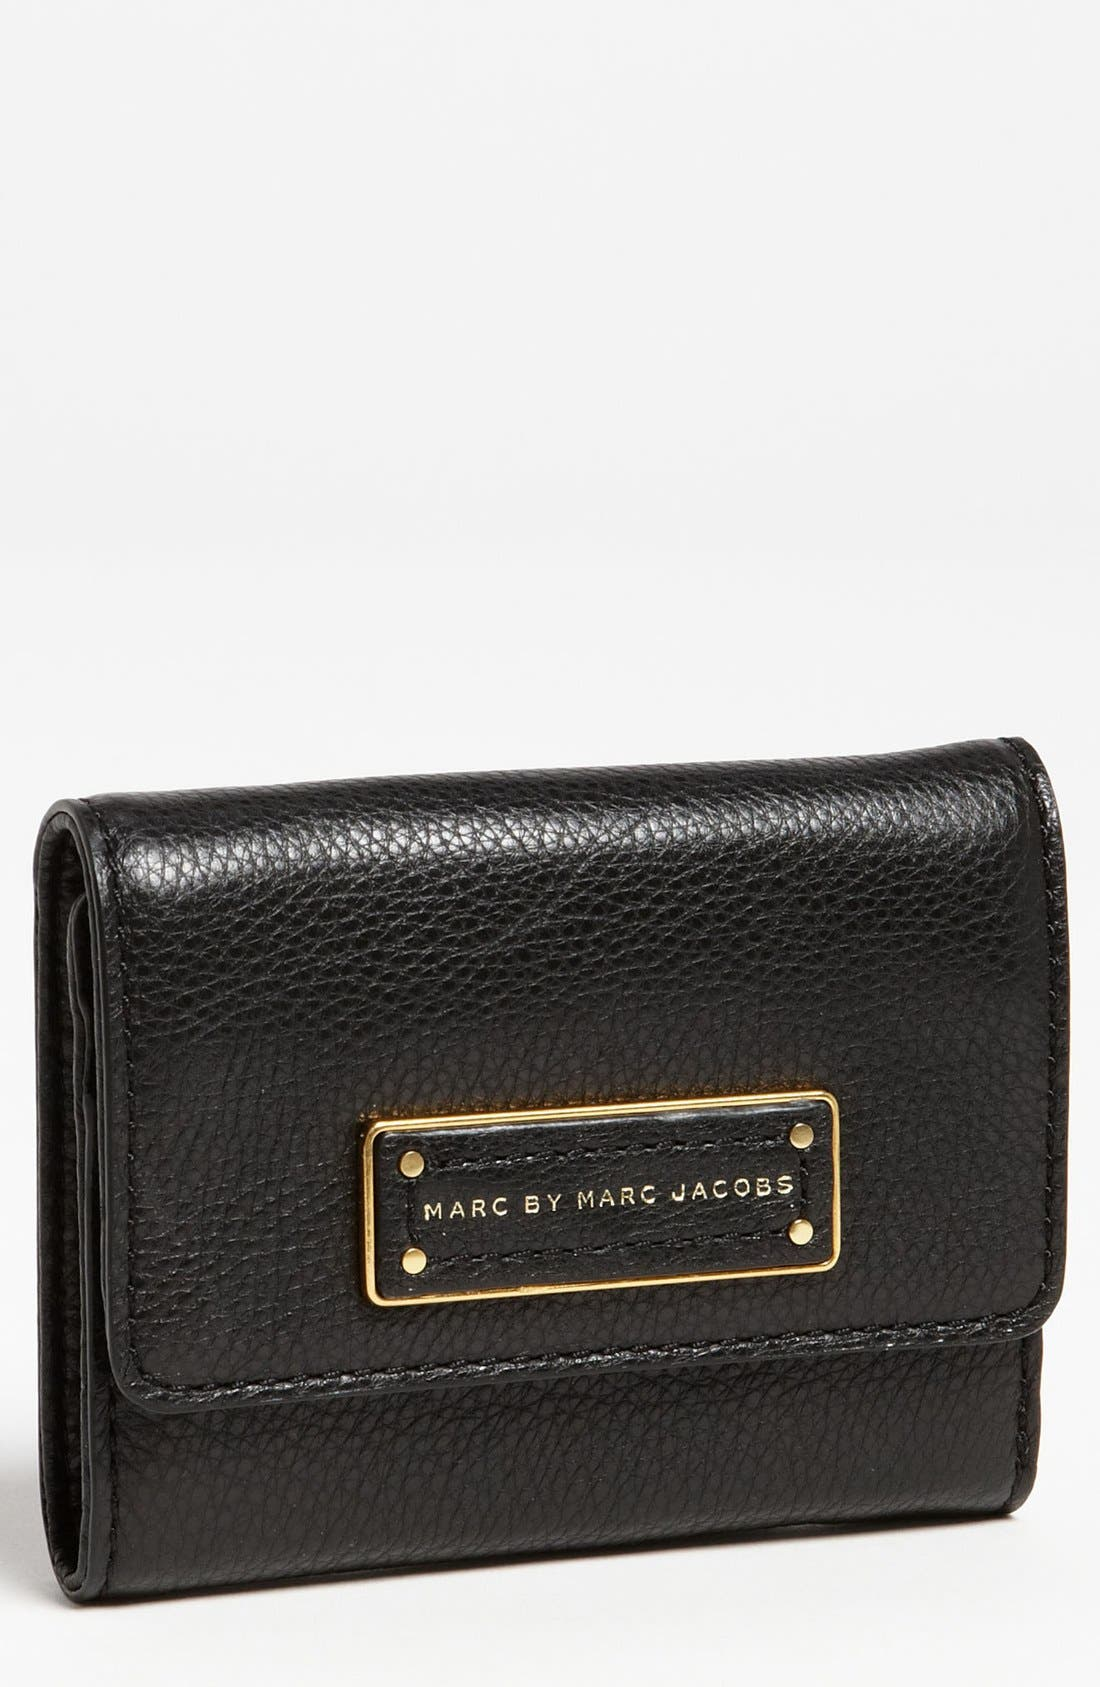 MARC BY MARC JACOBS 'Too Hot to Handle' Billfold Wallet,                         Main,                         color, 001